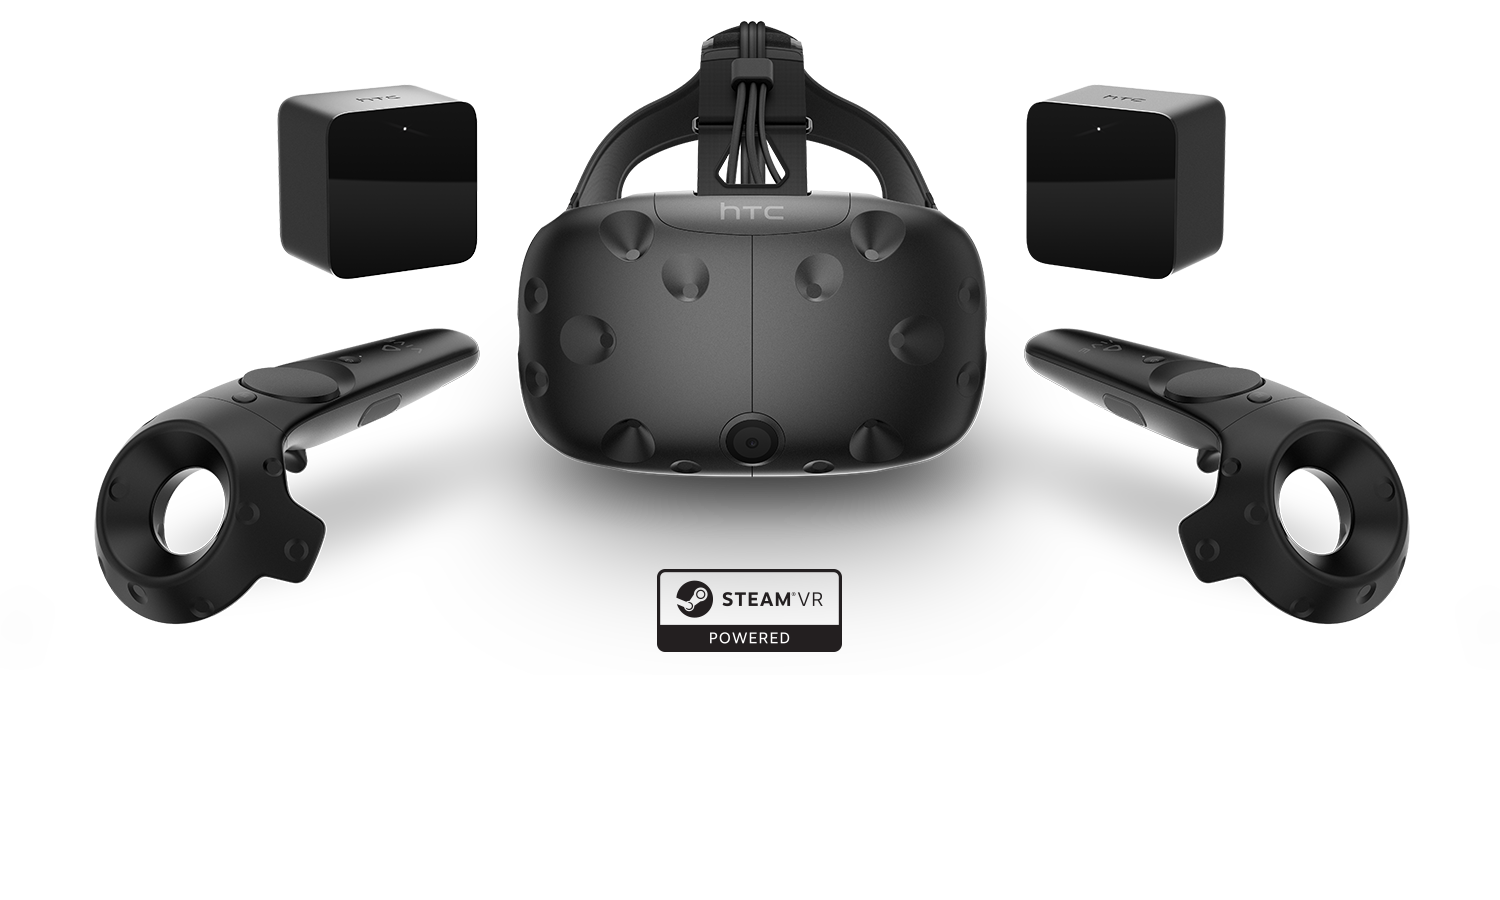 Announcement of HTC Vive Payment Plan